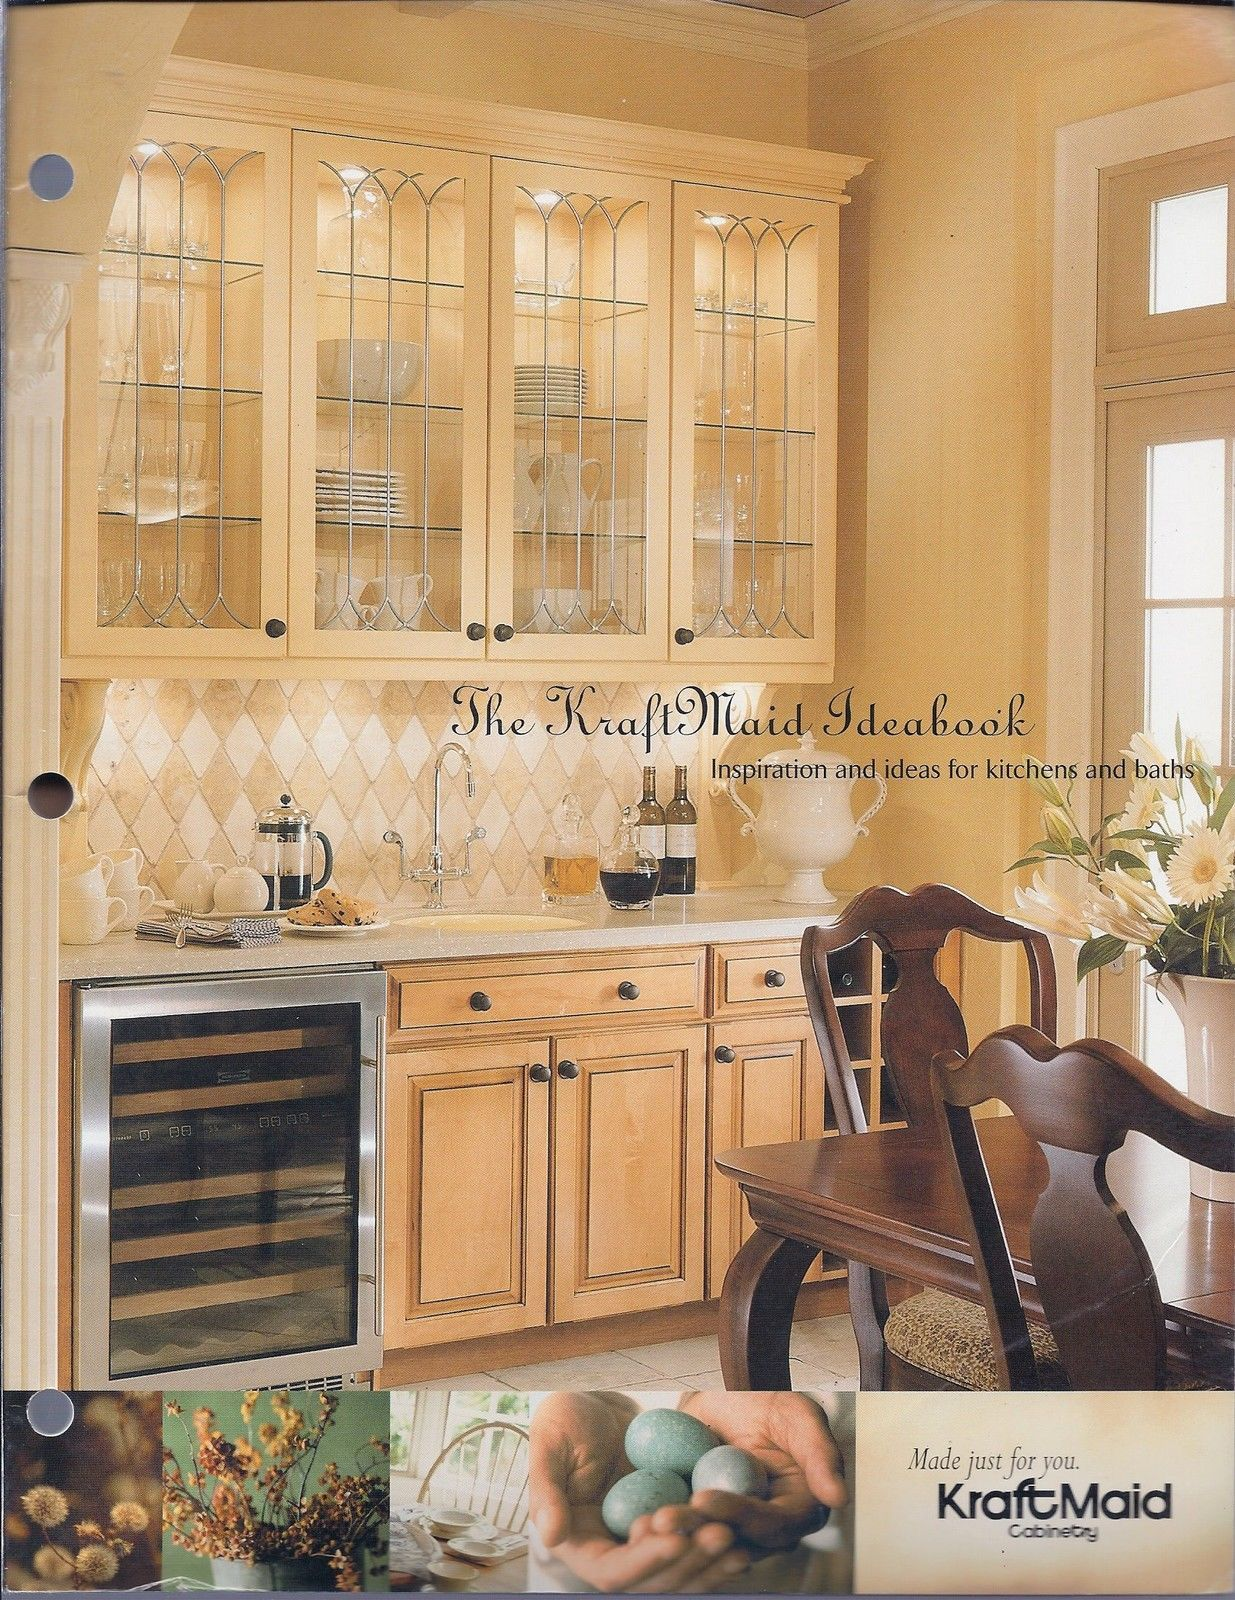 Primary image for The Kraft Maid Ideabook 4/2003-Inspiration & Ideas for Kitchens And Baths